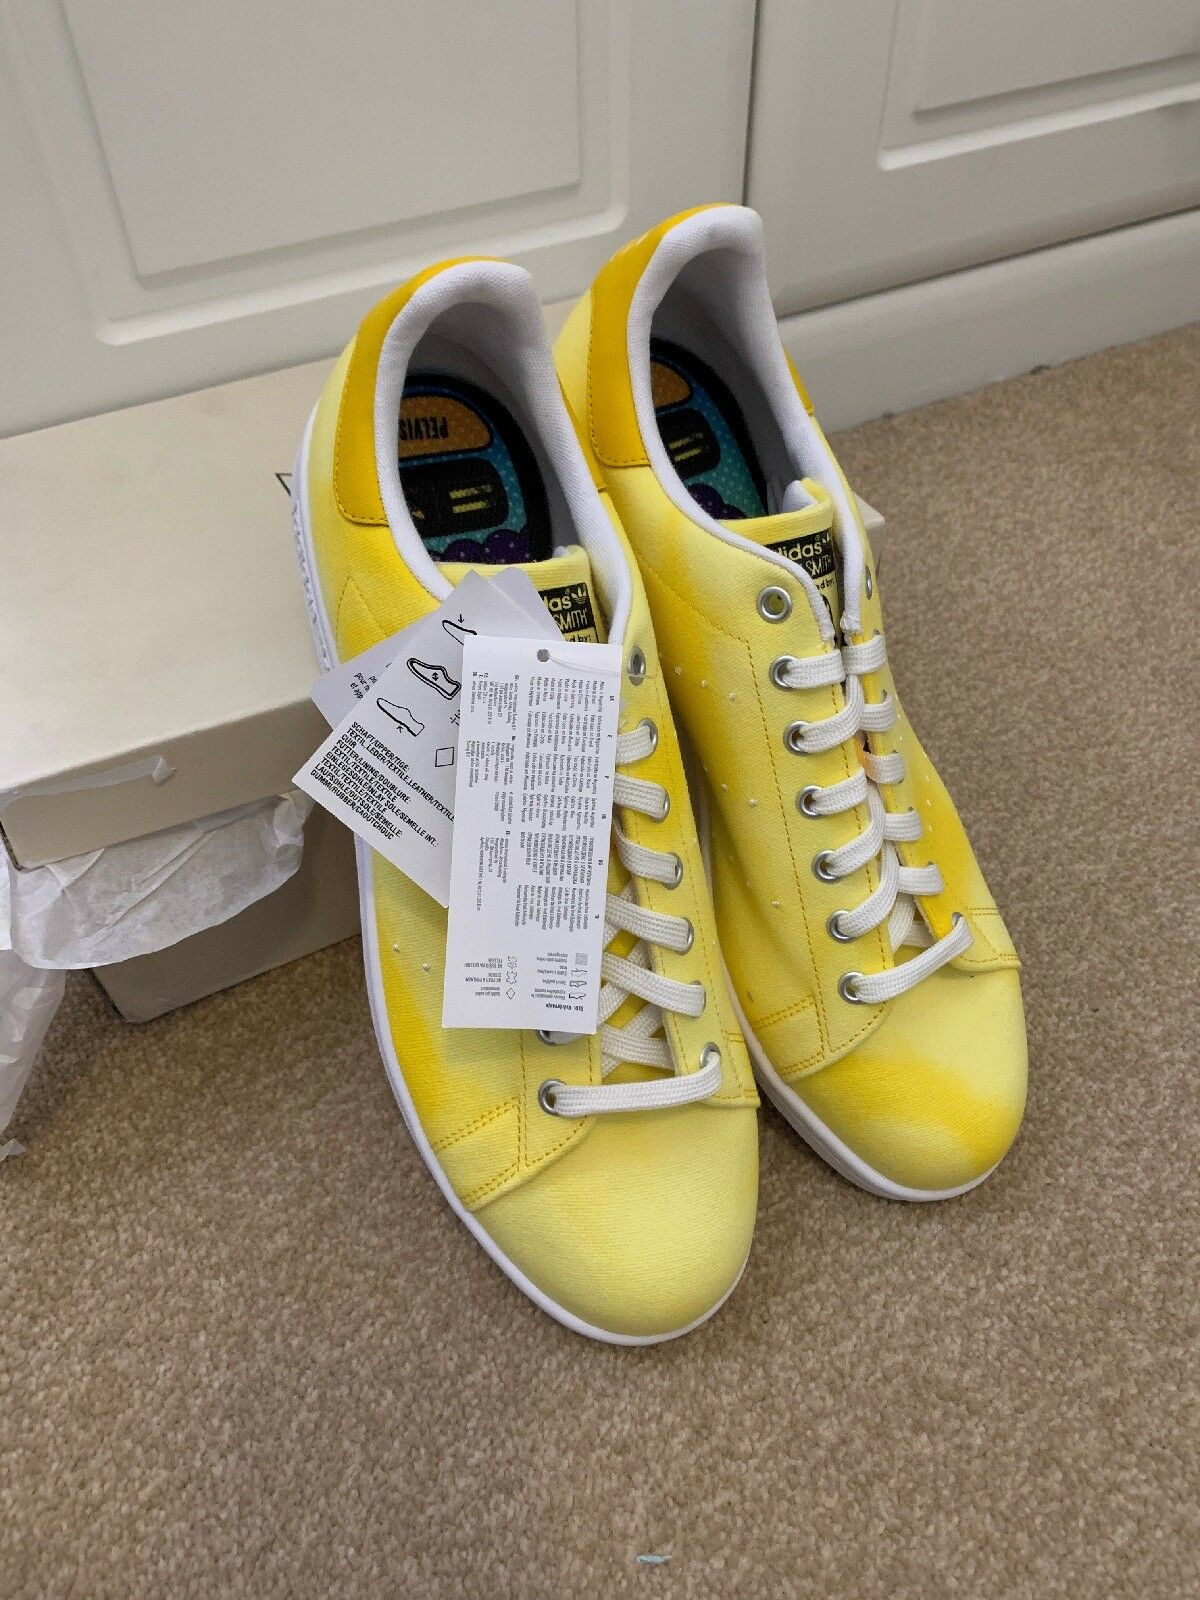 9724e8d5cd Adidas Originales Pharrell Williams Hu Holi Stan Smith Amarillo Talla UK  11.5 Nuevo Y En Caja